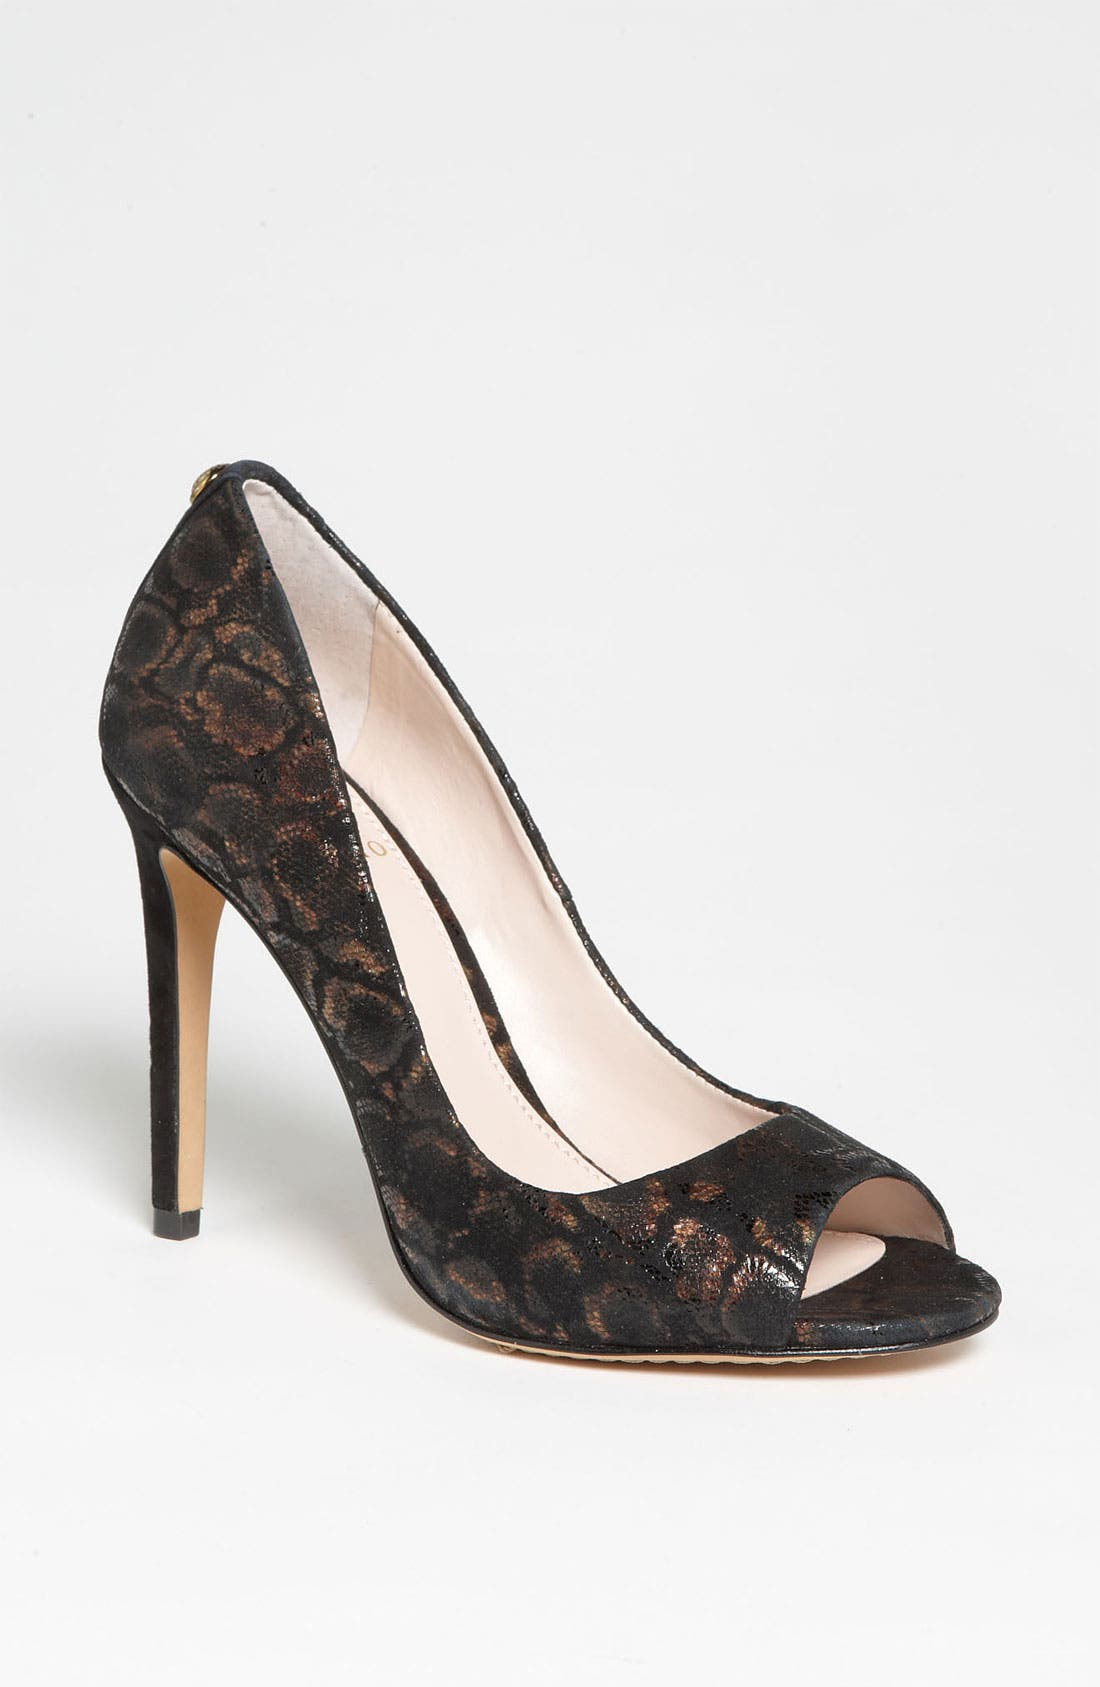 Alternate Image 1 Selected - Vince Camuto 'Lexis2' Pump